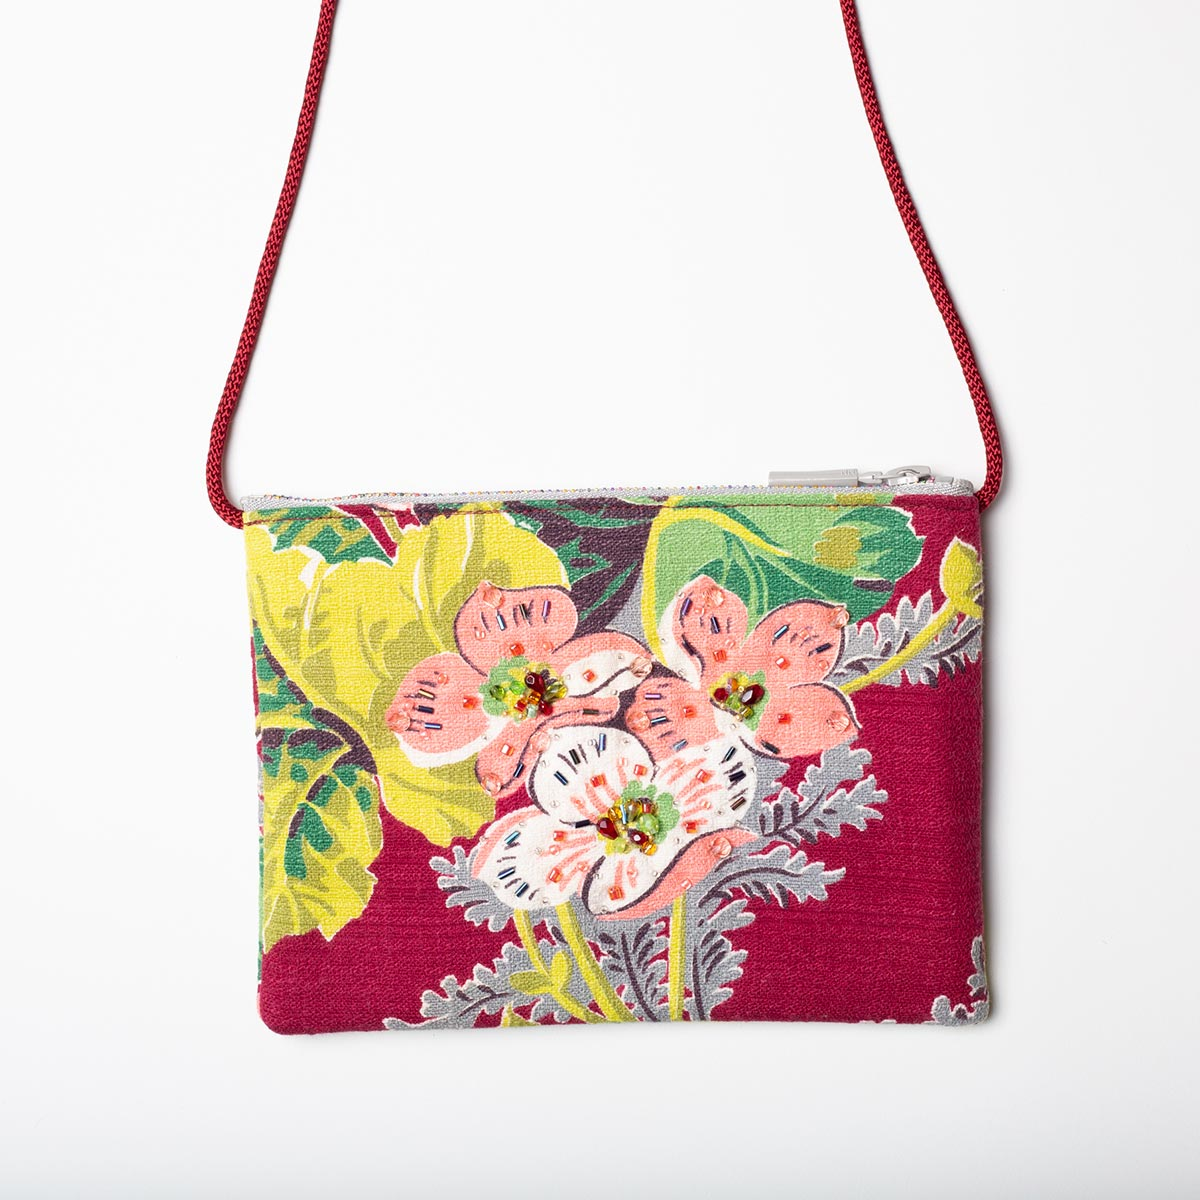 The Opera Bag – Candy Color Floral Motif